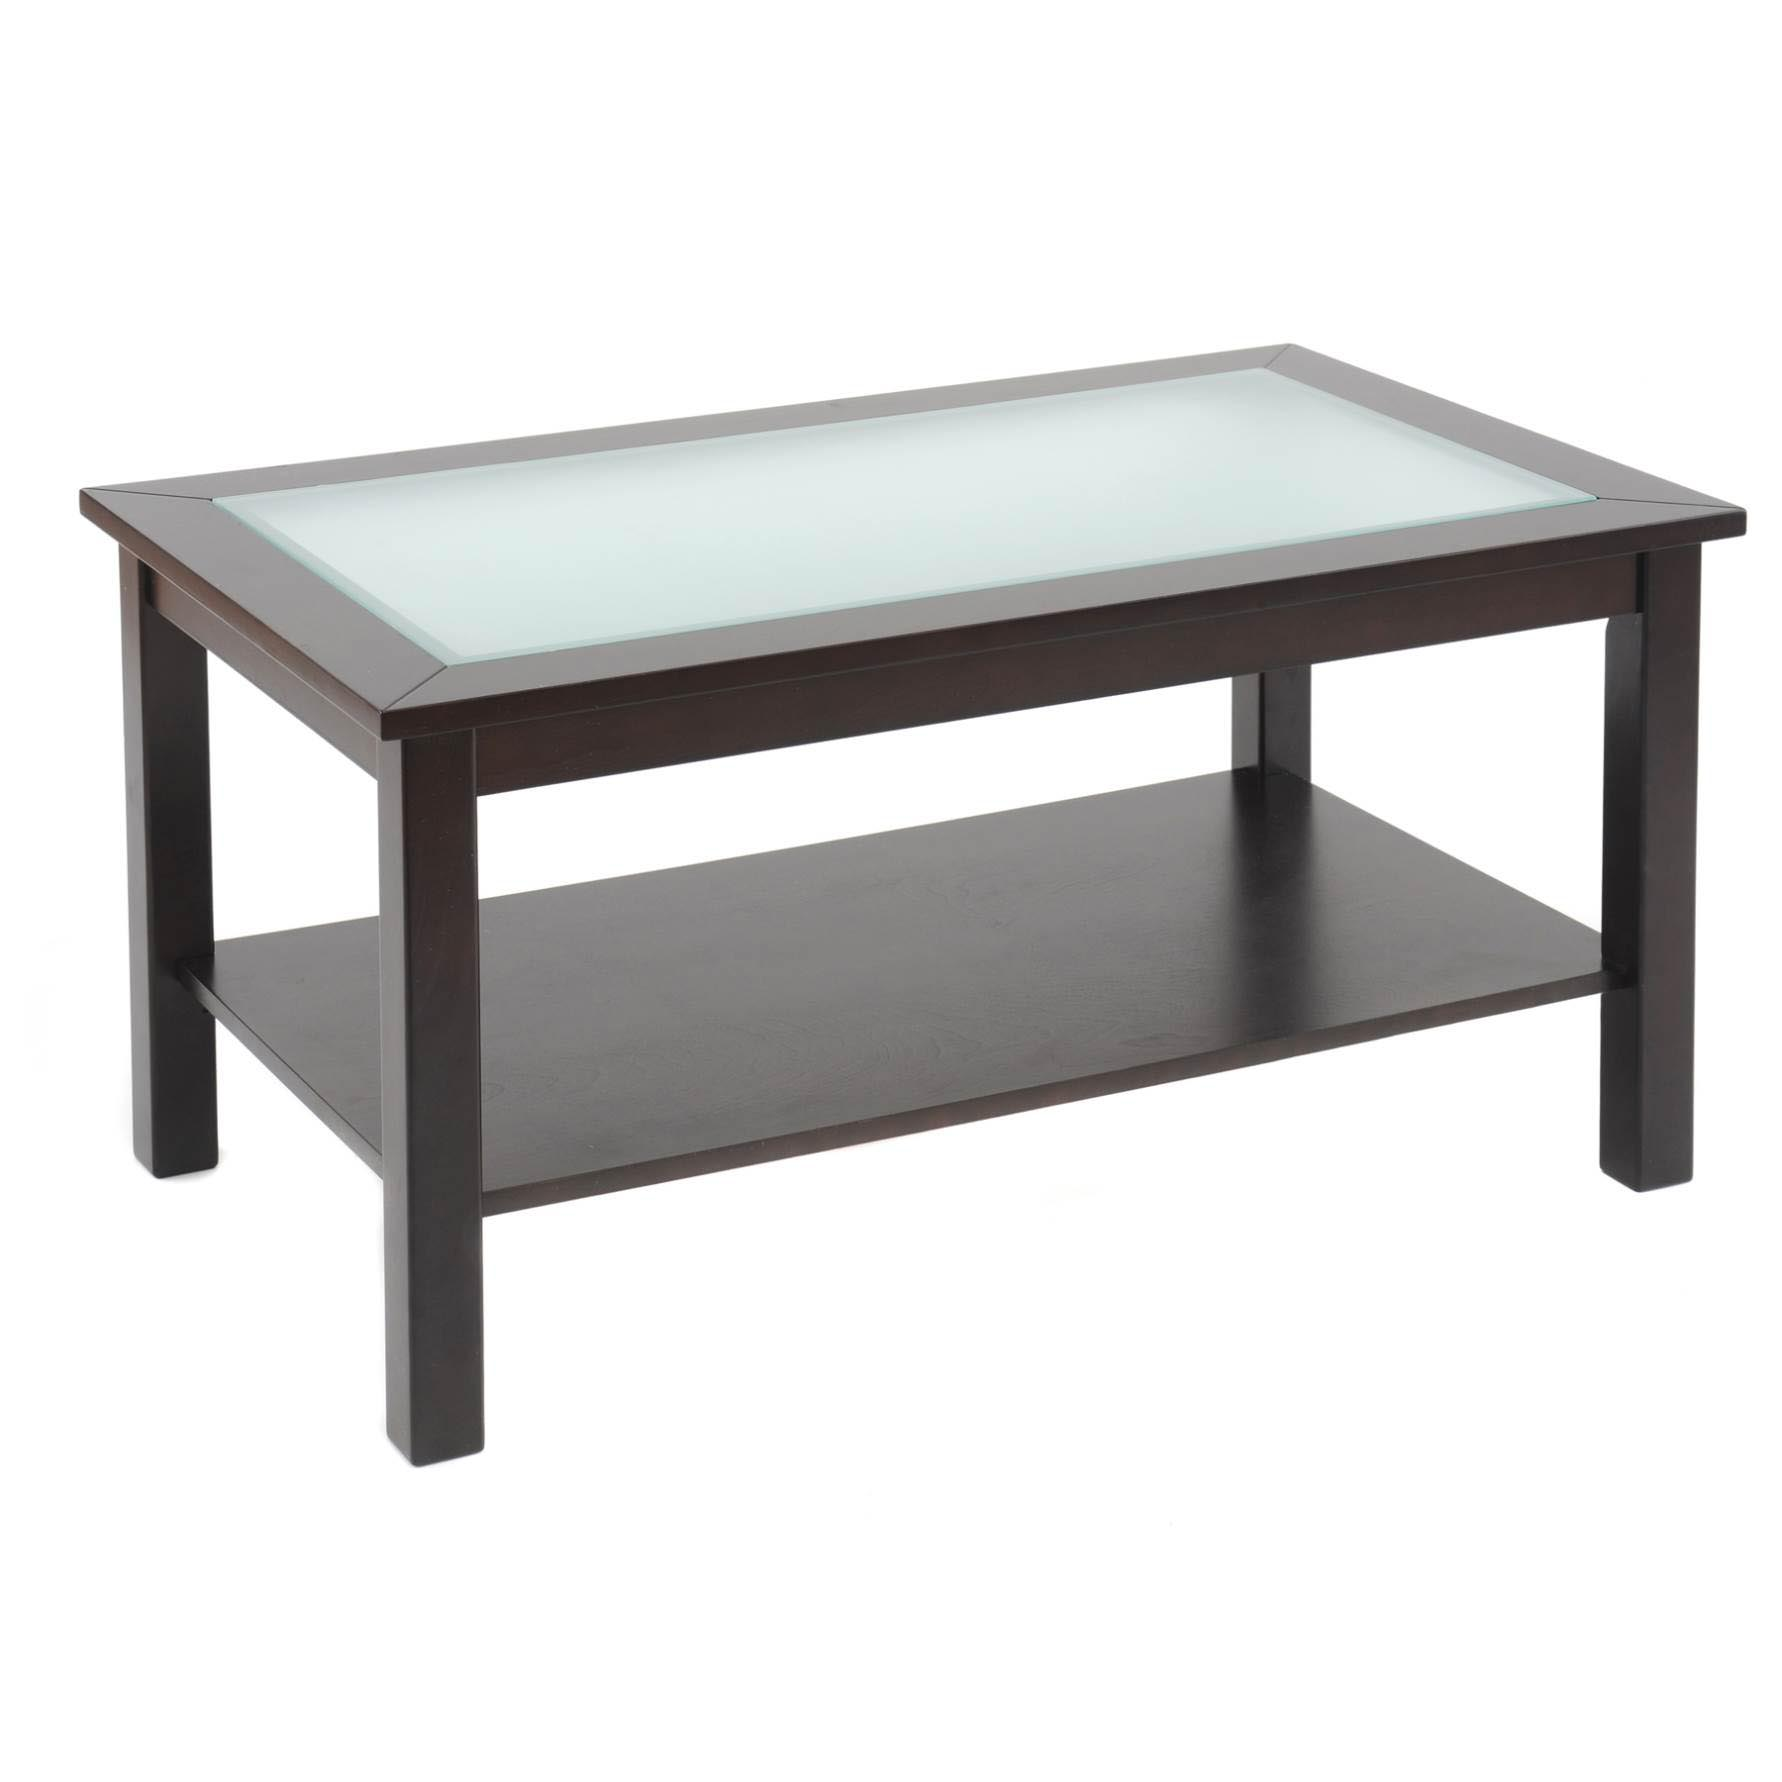 Glass display coffee table ikea coffee table design ideas Espresso coffee table